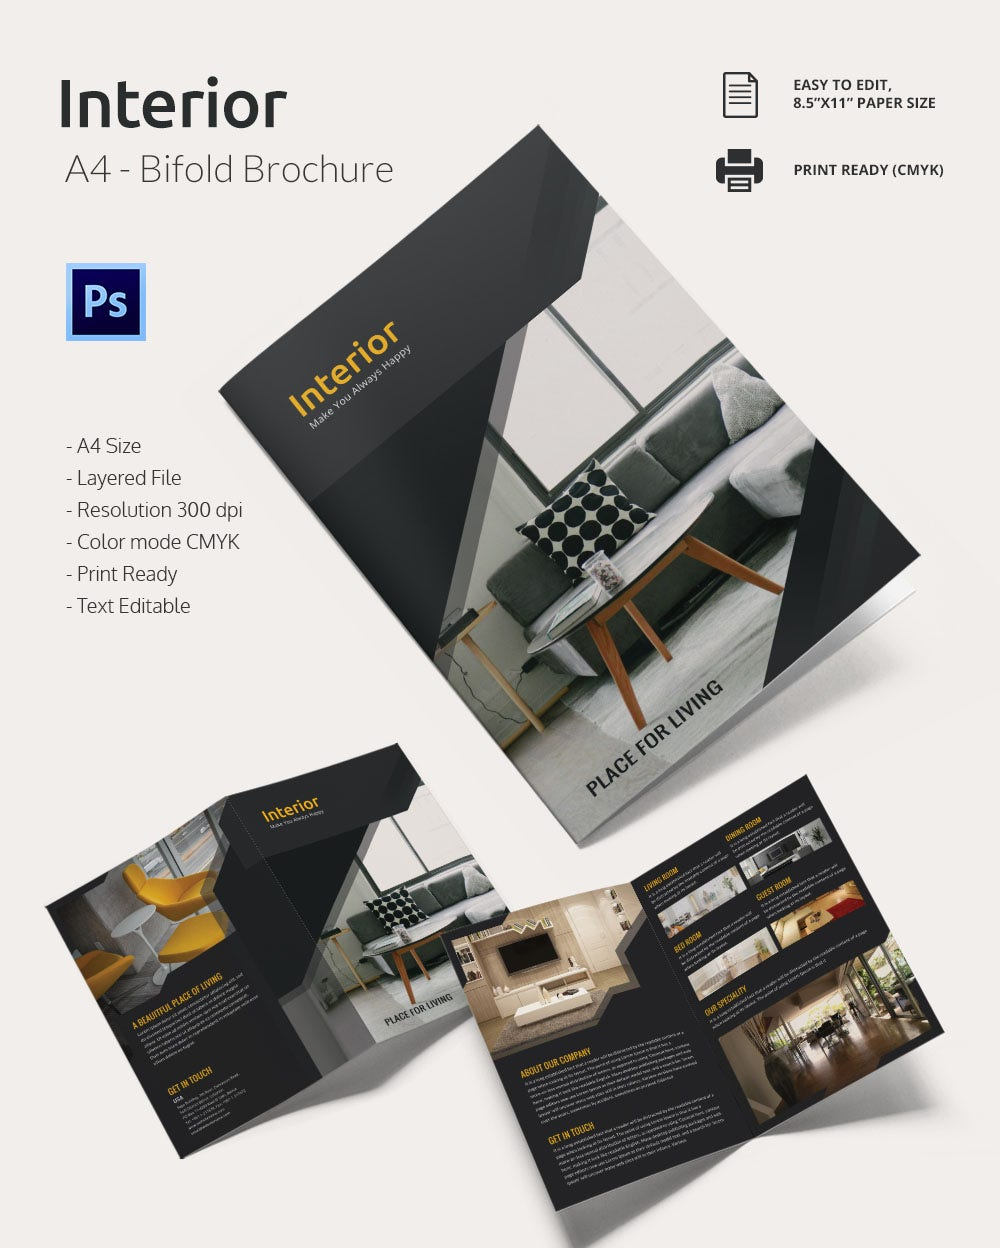 17 interior decoration brochure free word psd pdf for Pdf brochure design templates